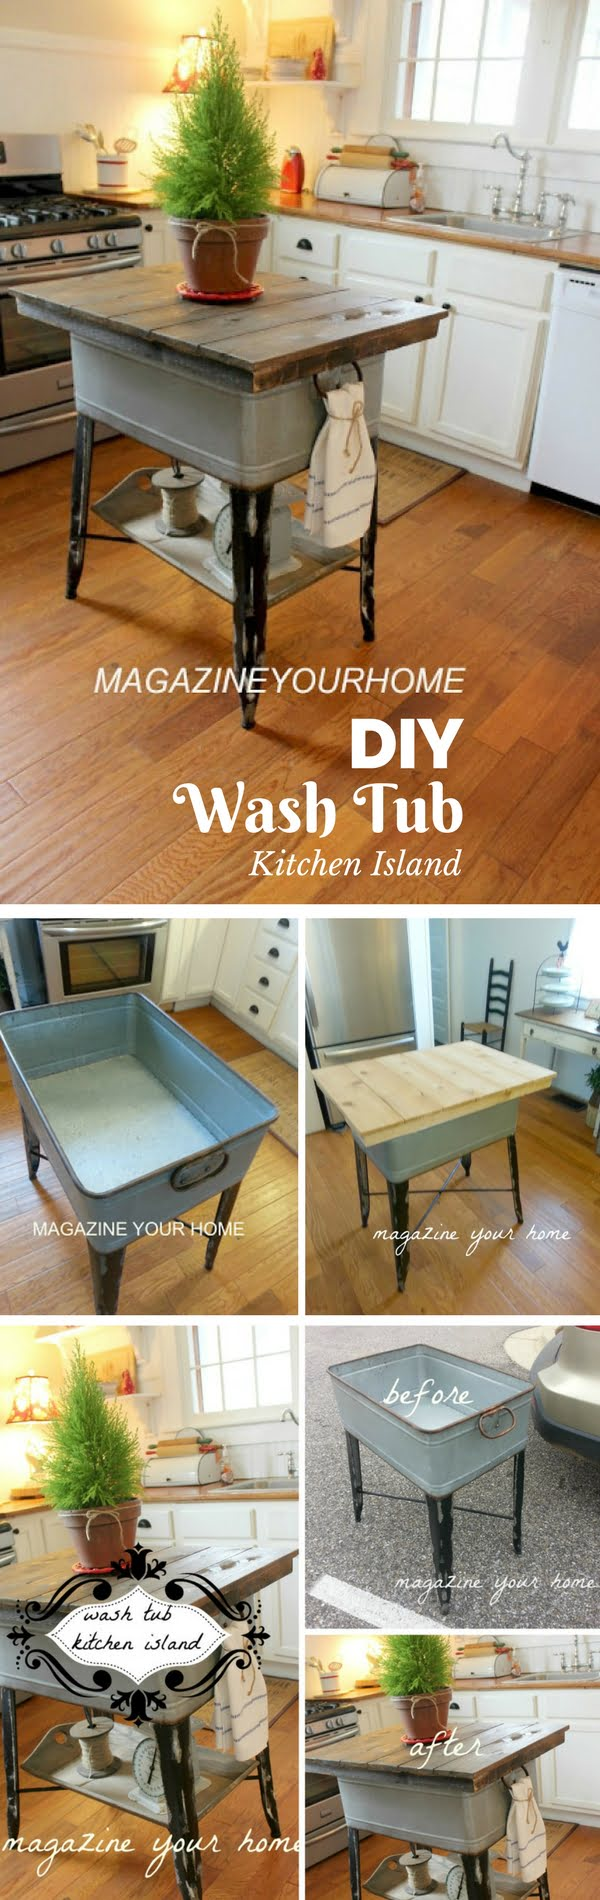 25 Easy DIY Kitchen Island Ideas That You Can Build on a Budget - Check out the tutorial on how to build a DIY kitchen island from a wash tub